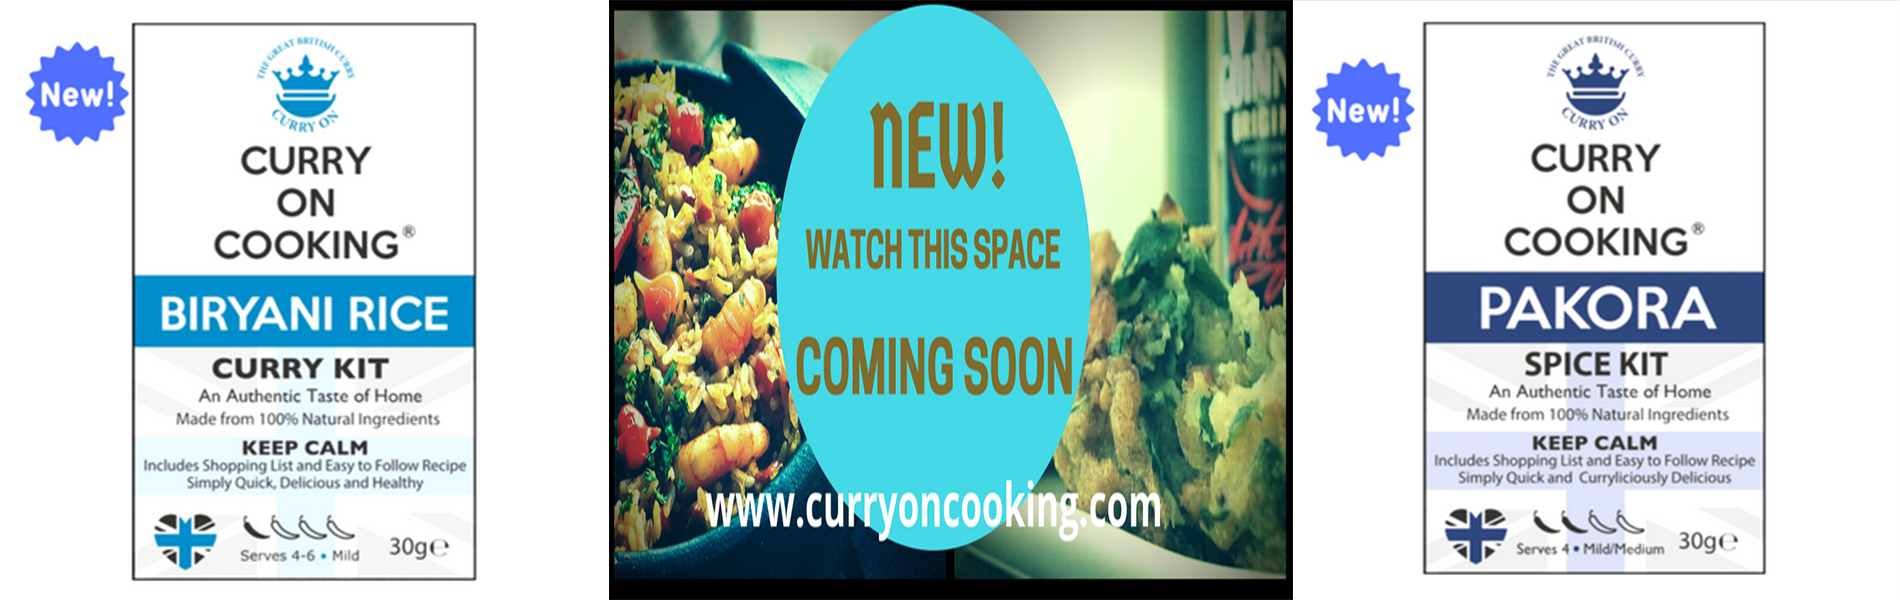 New Products from Curry On Cooking - Pakora and Biryani Rice